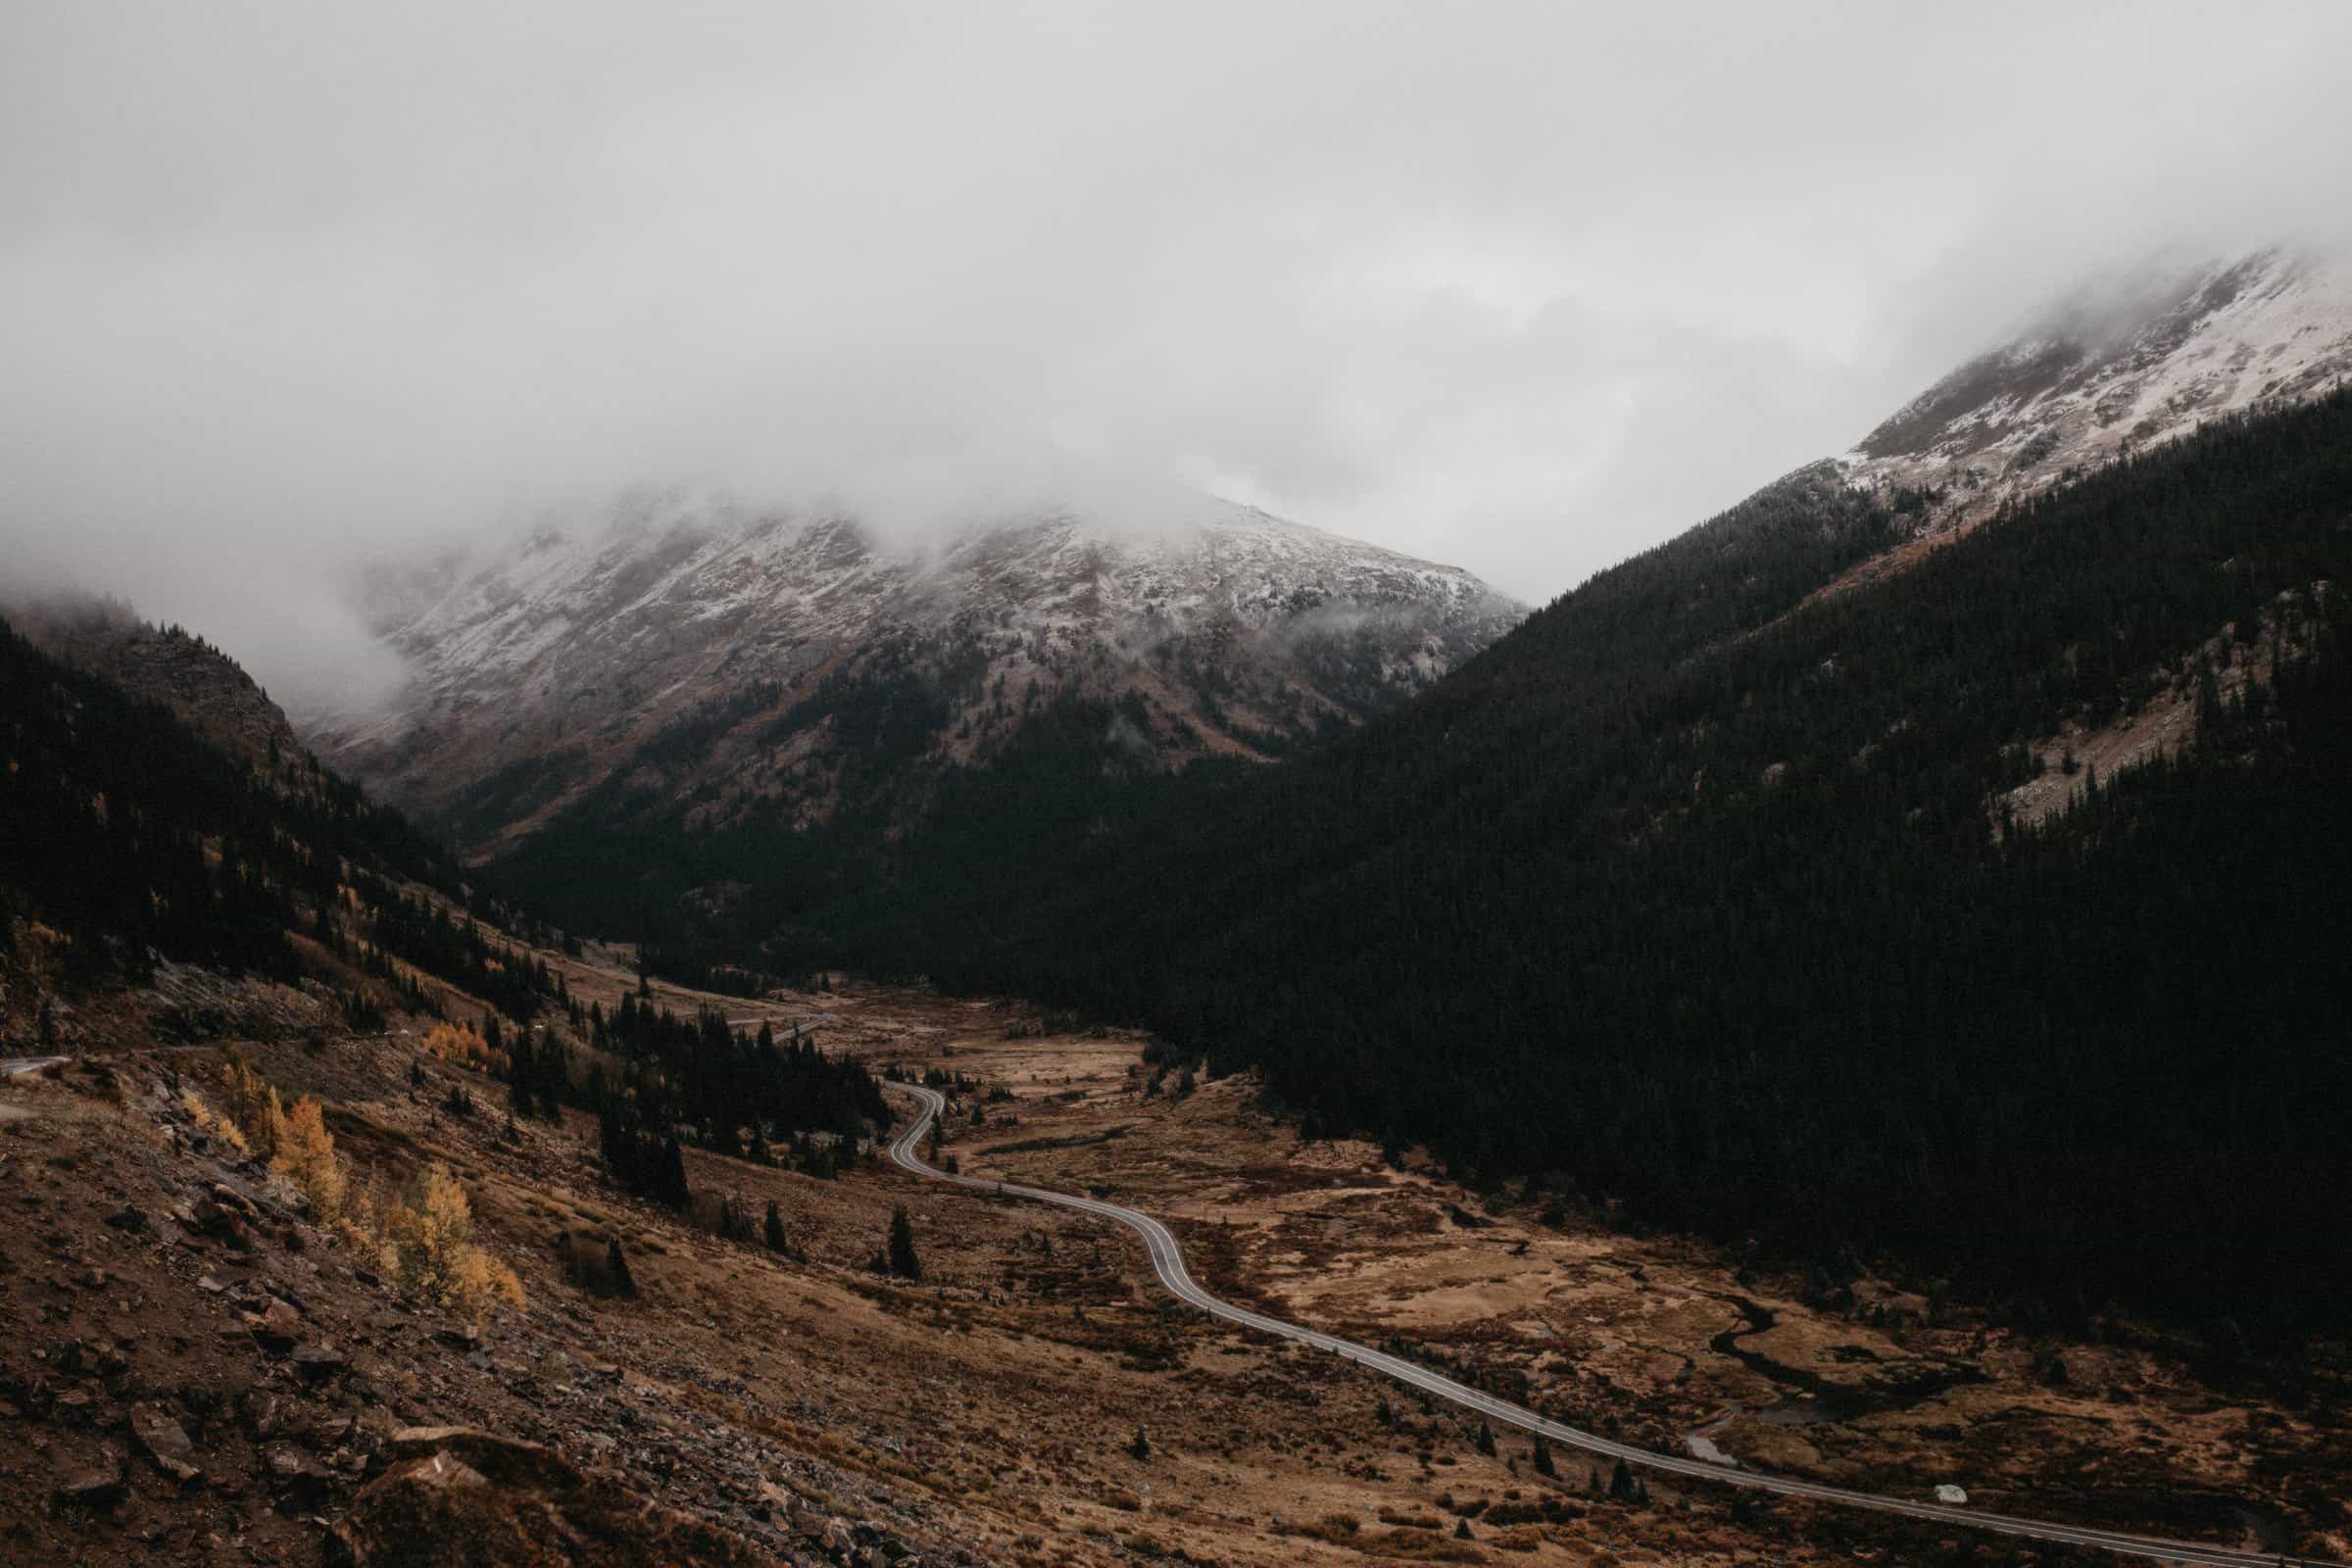 Downwards view of Independence Pass in Colorado during a foggy and snowy day